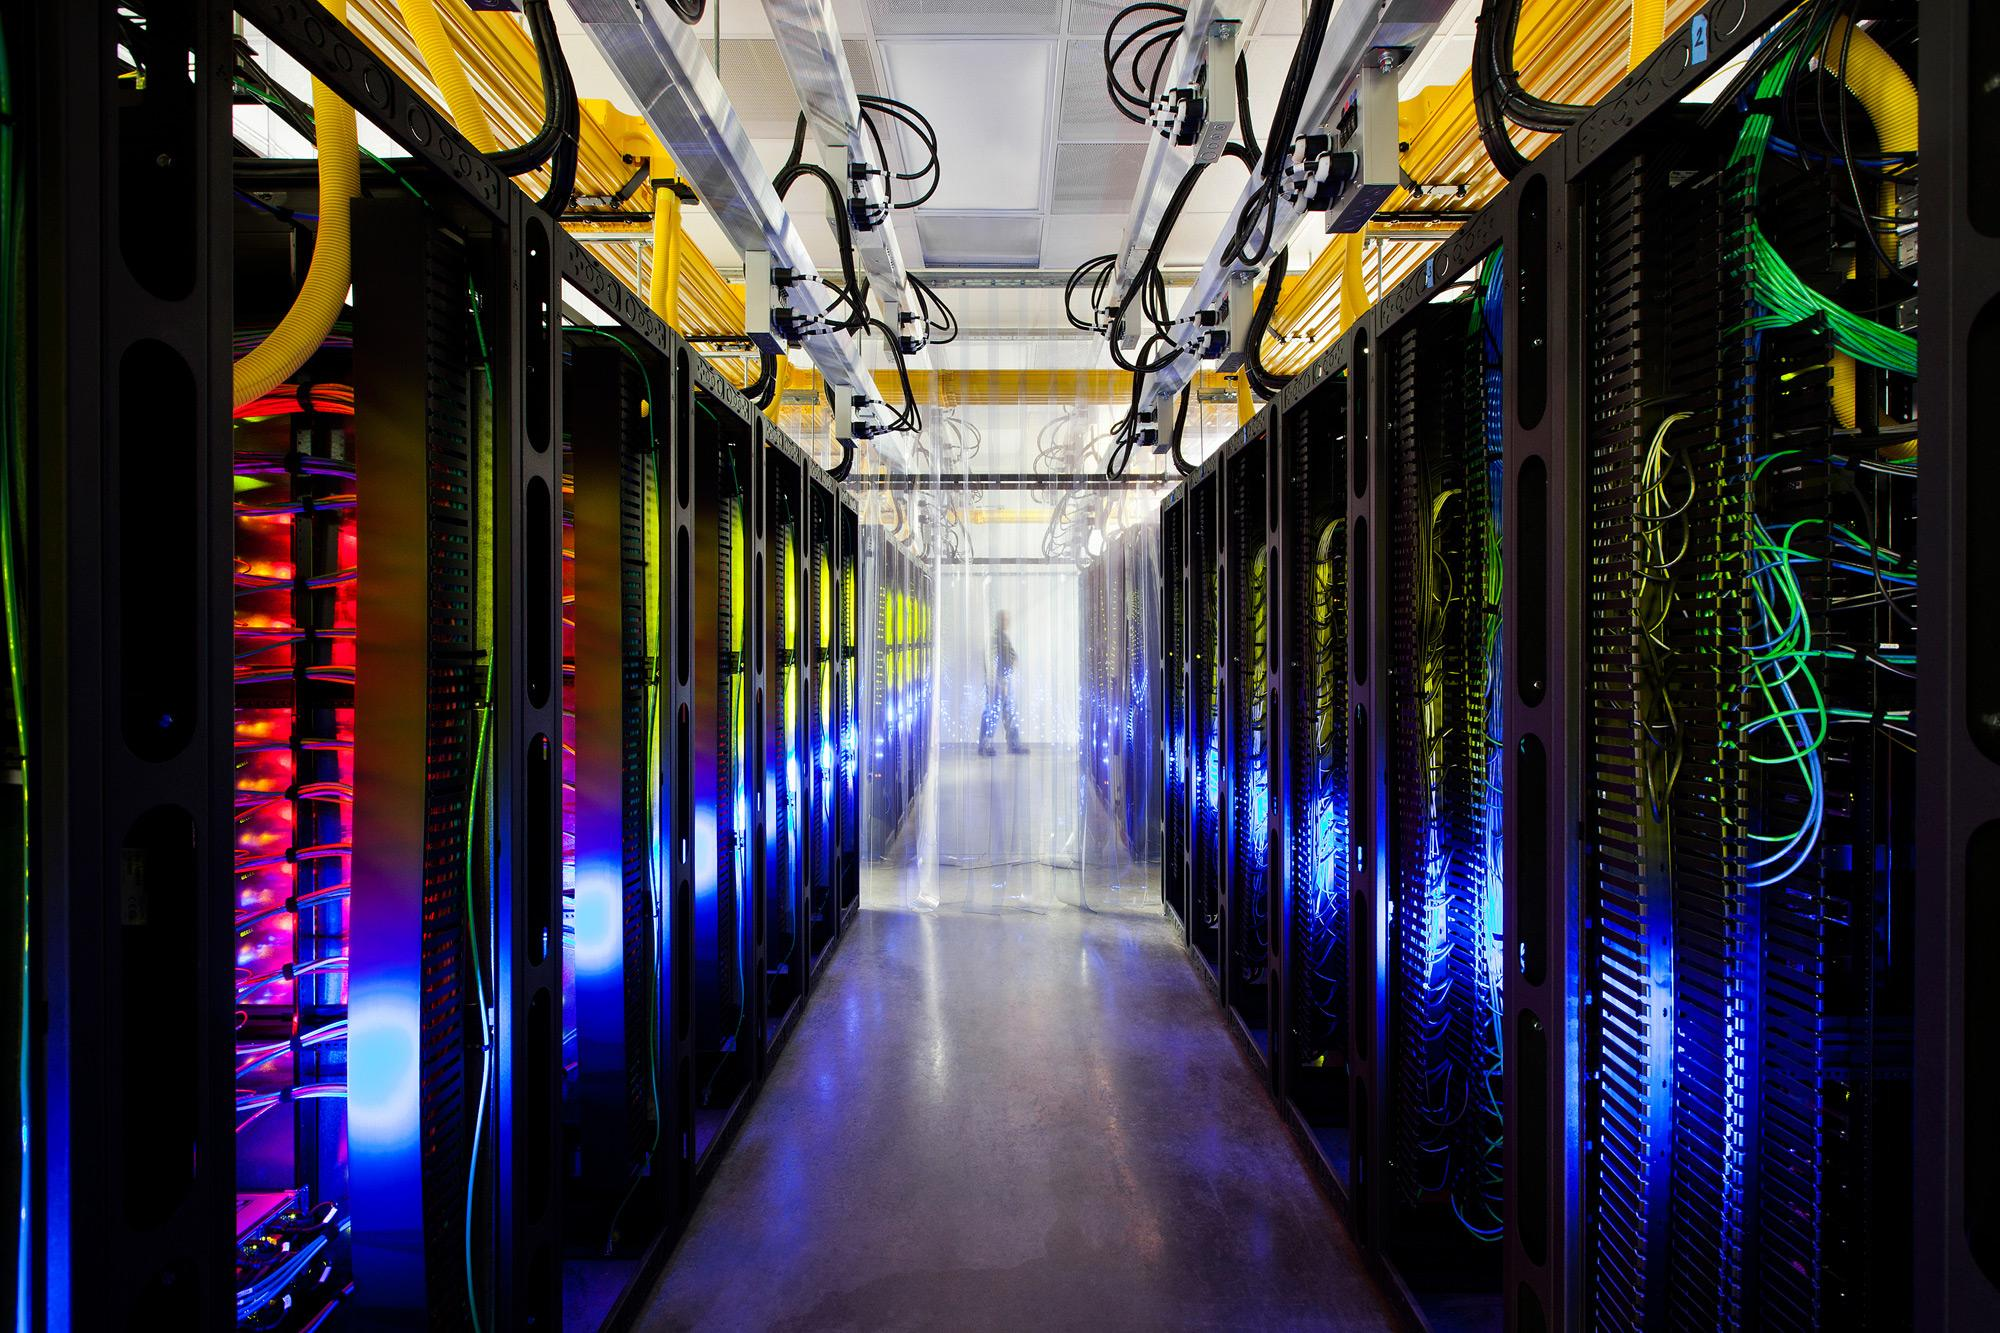 Software Defined Data Center Data center fabric Compute Storage Networking Facilities Software based